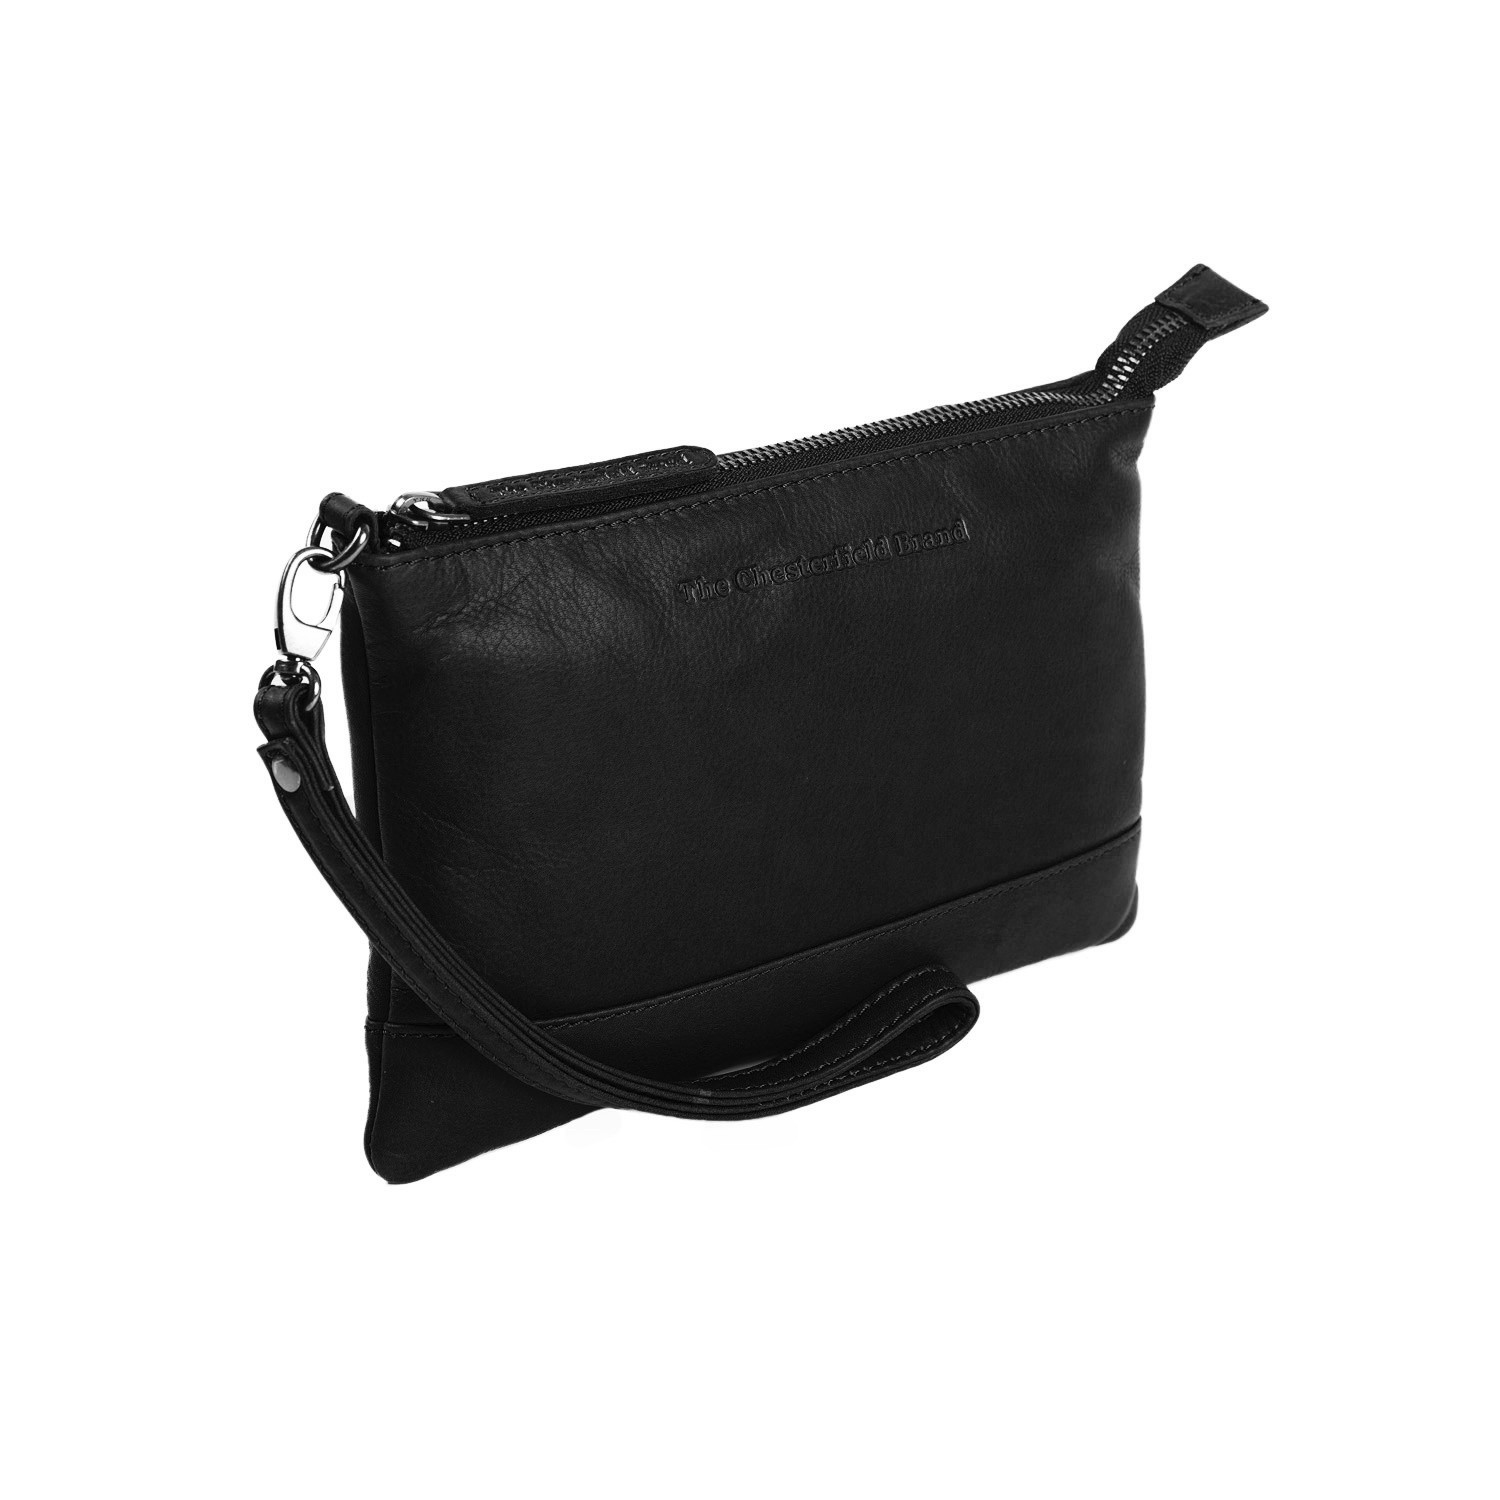 Bilde av Chesterfield Leather Clutch Black Sue